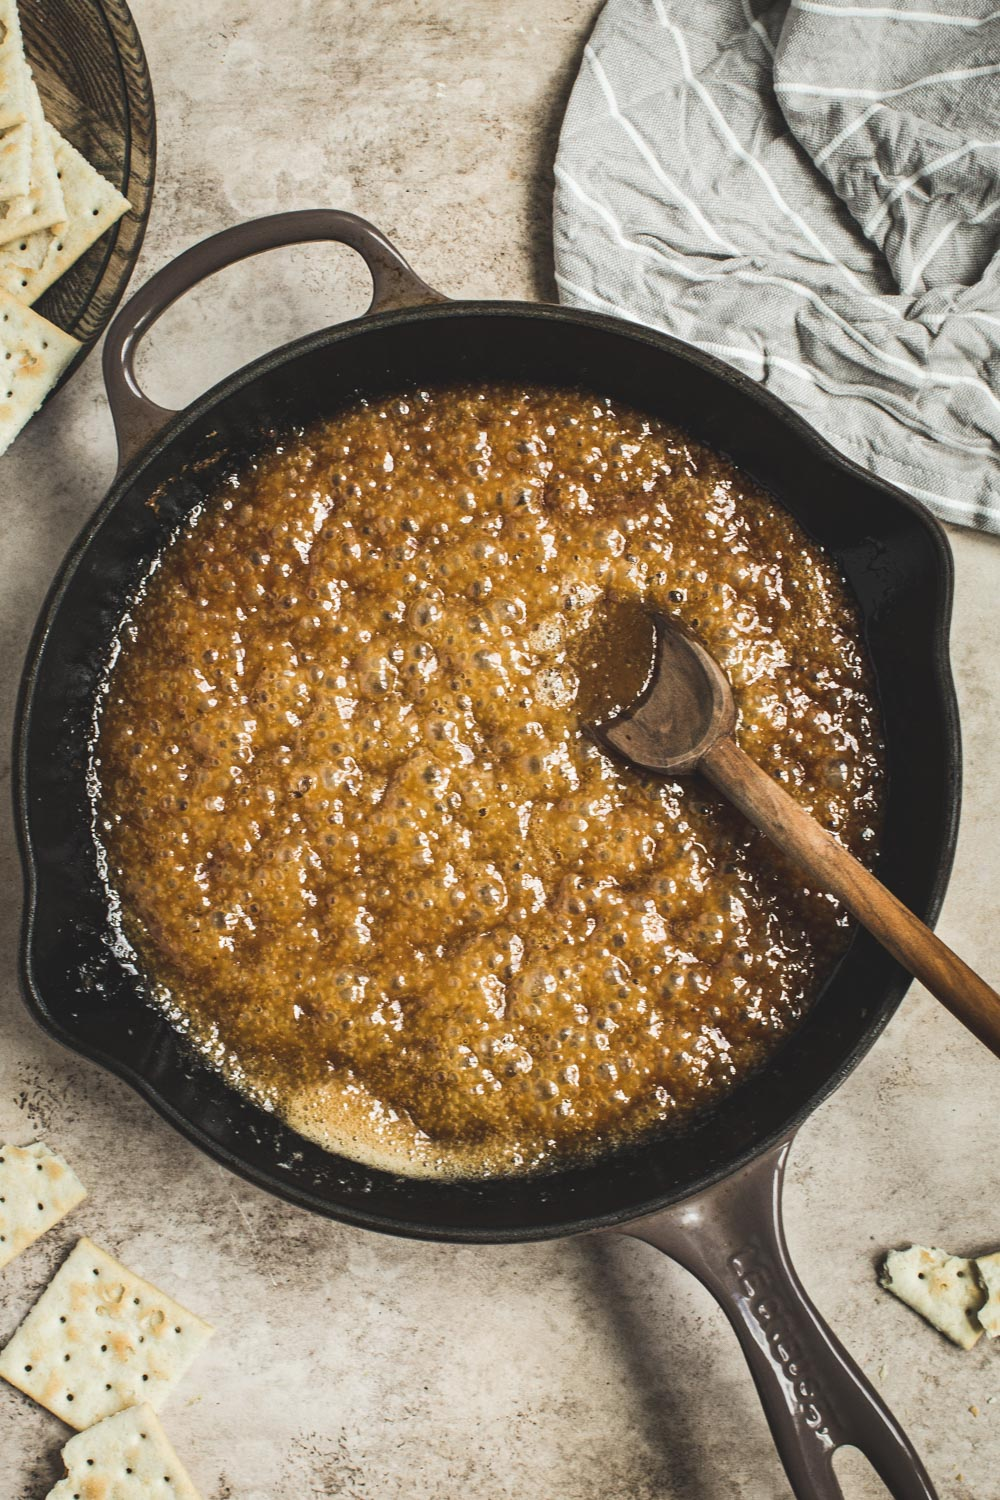 Butter and brown sugar mixture in an iron skillet with a wooden spoon.